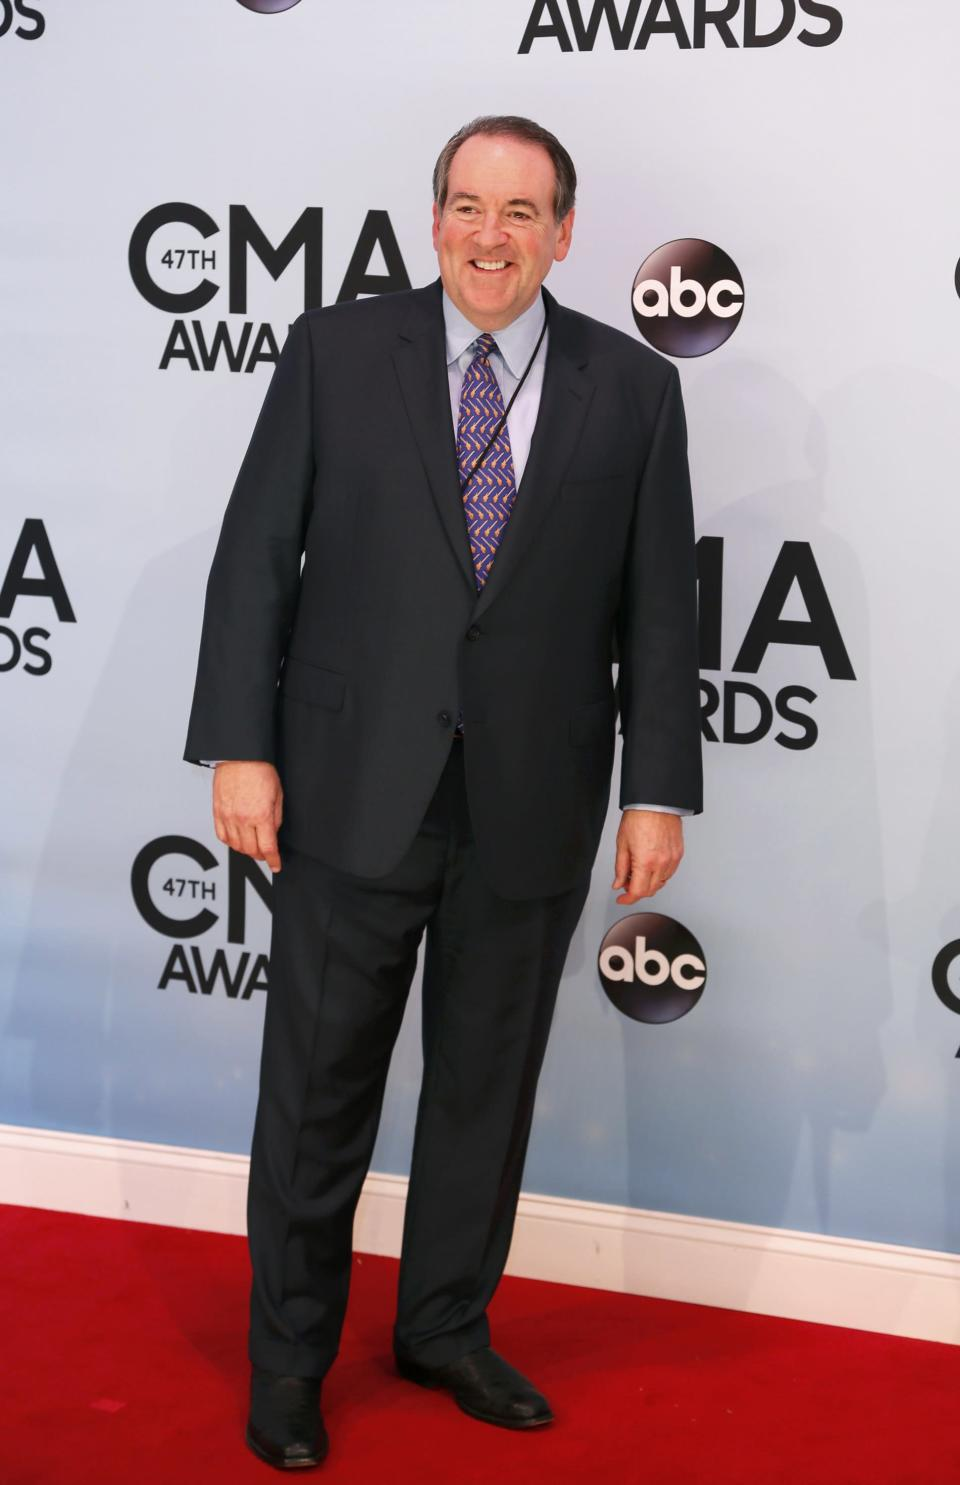 Former Arkansas Governor Mike Huckabee arrives at the 47th Country Music Association Awards in Nashville, Tennessee November 6, 2013. REUTERS/Eric Henderson (UNITED STATES - Tags: ENTERTAINMENT POLITICS)